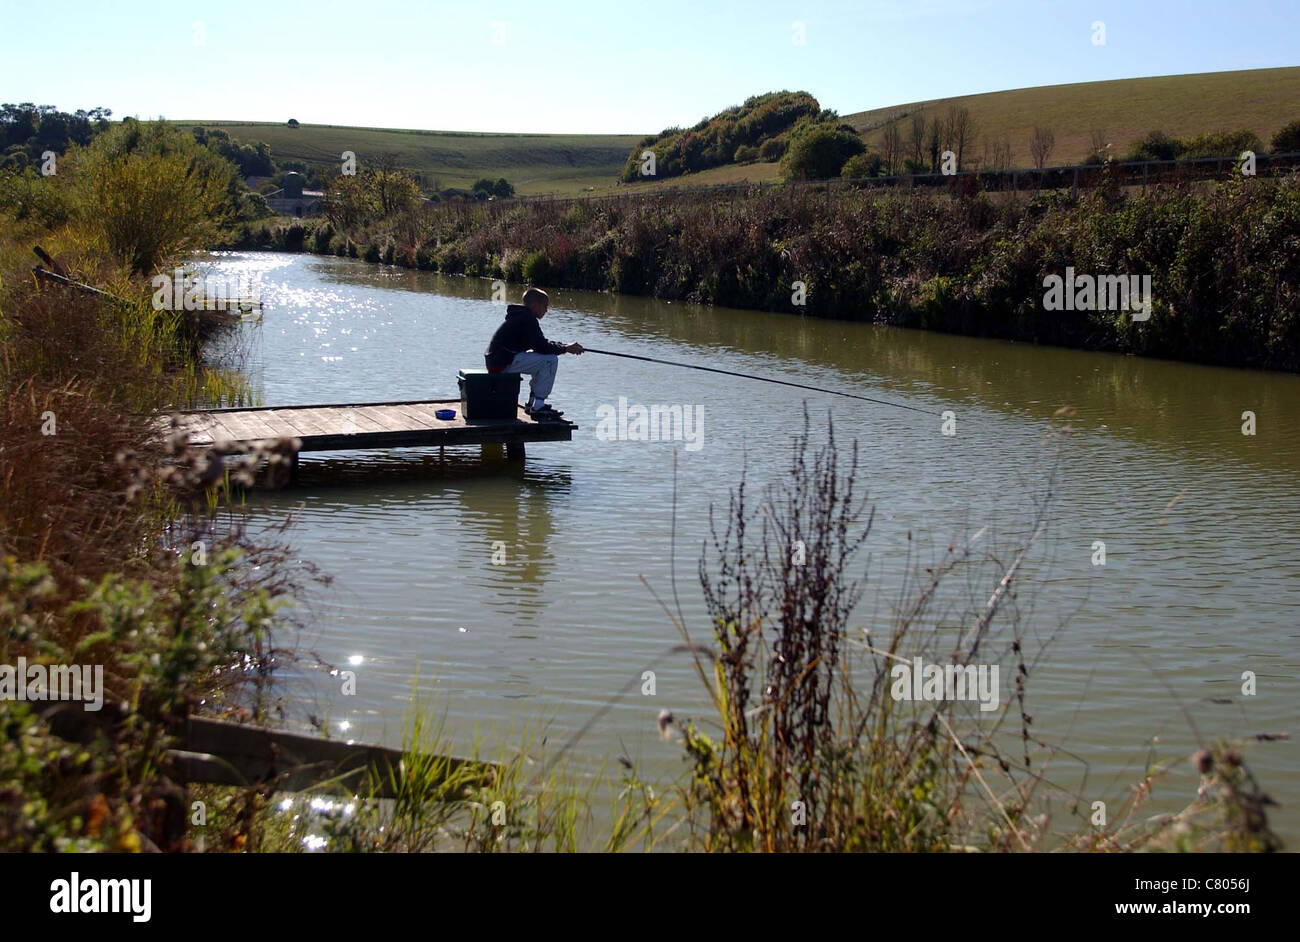 Angling at passies pond near lancing west sussex uk stock for Stocked fishing ponds near me